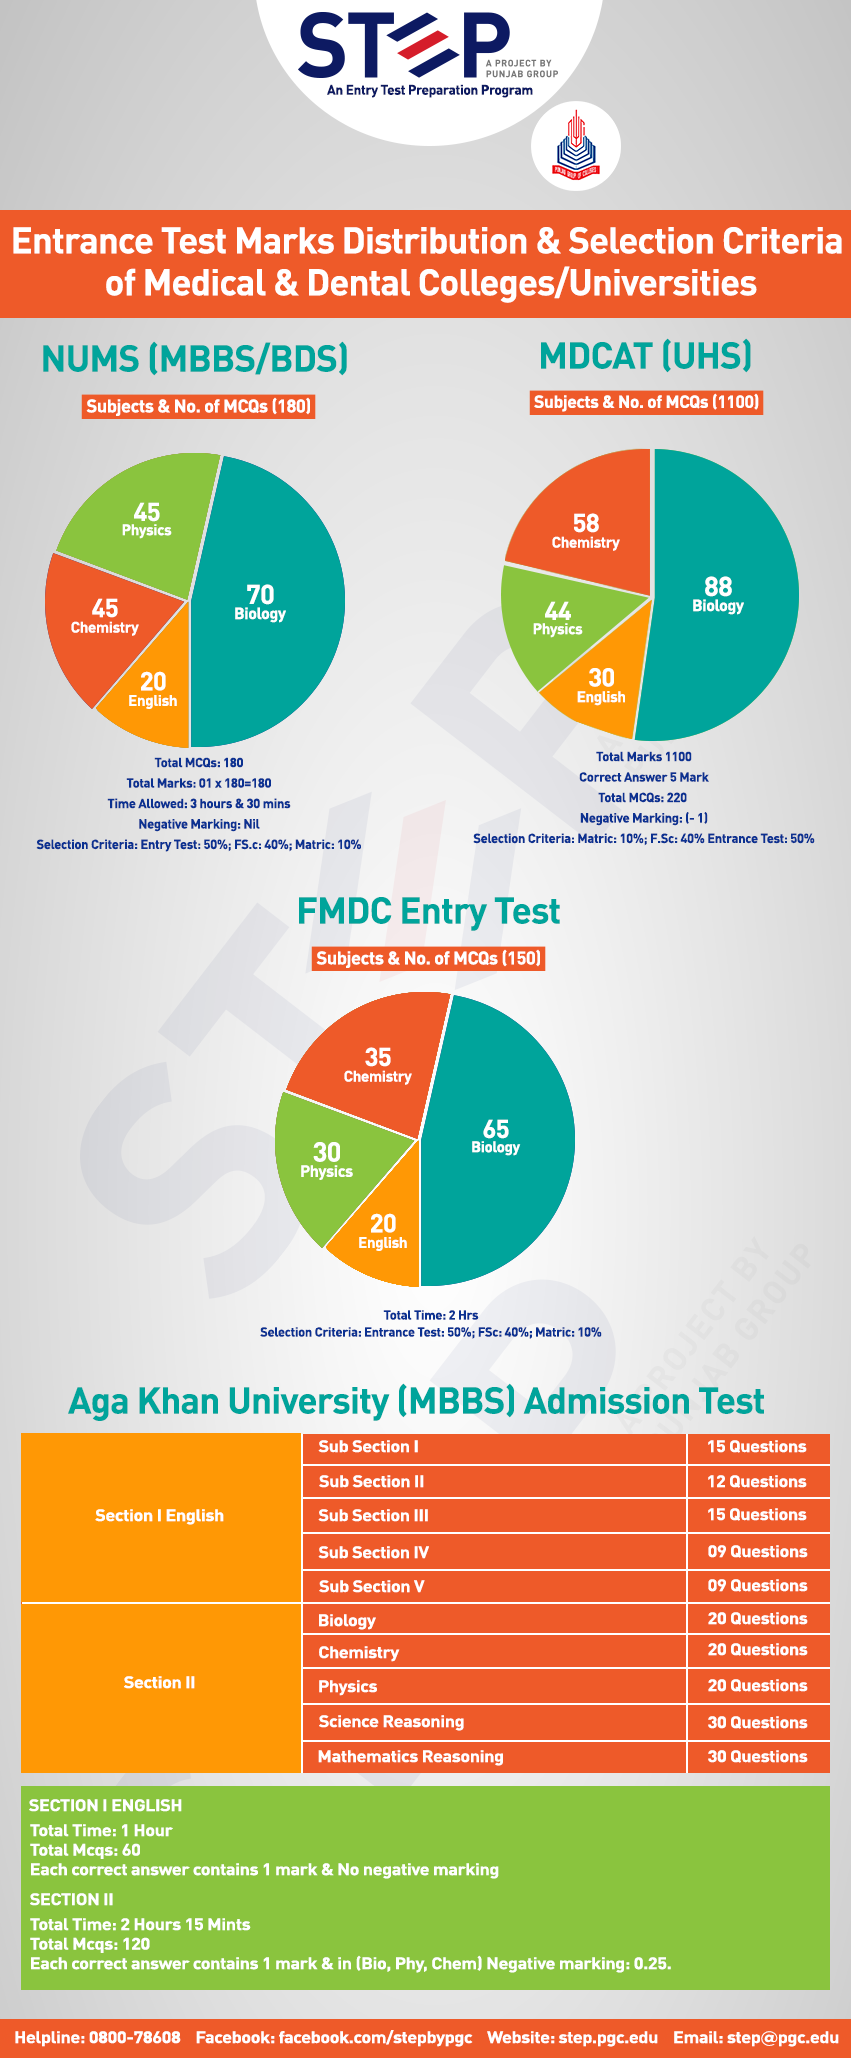 Selection Criteria & Marks Distribution of Medical & Dental Colleges/Universities Entrance Test